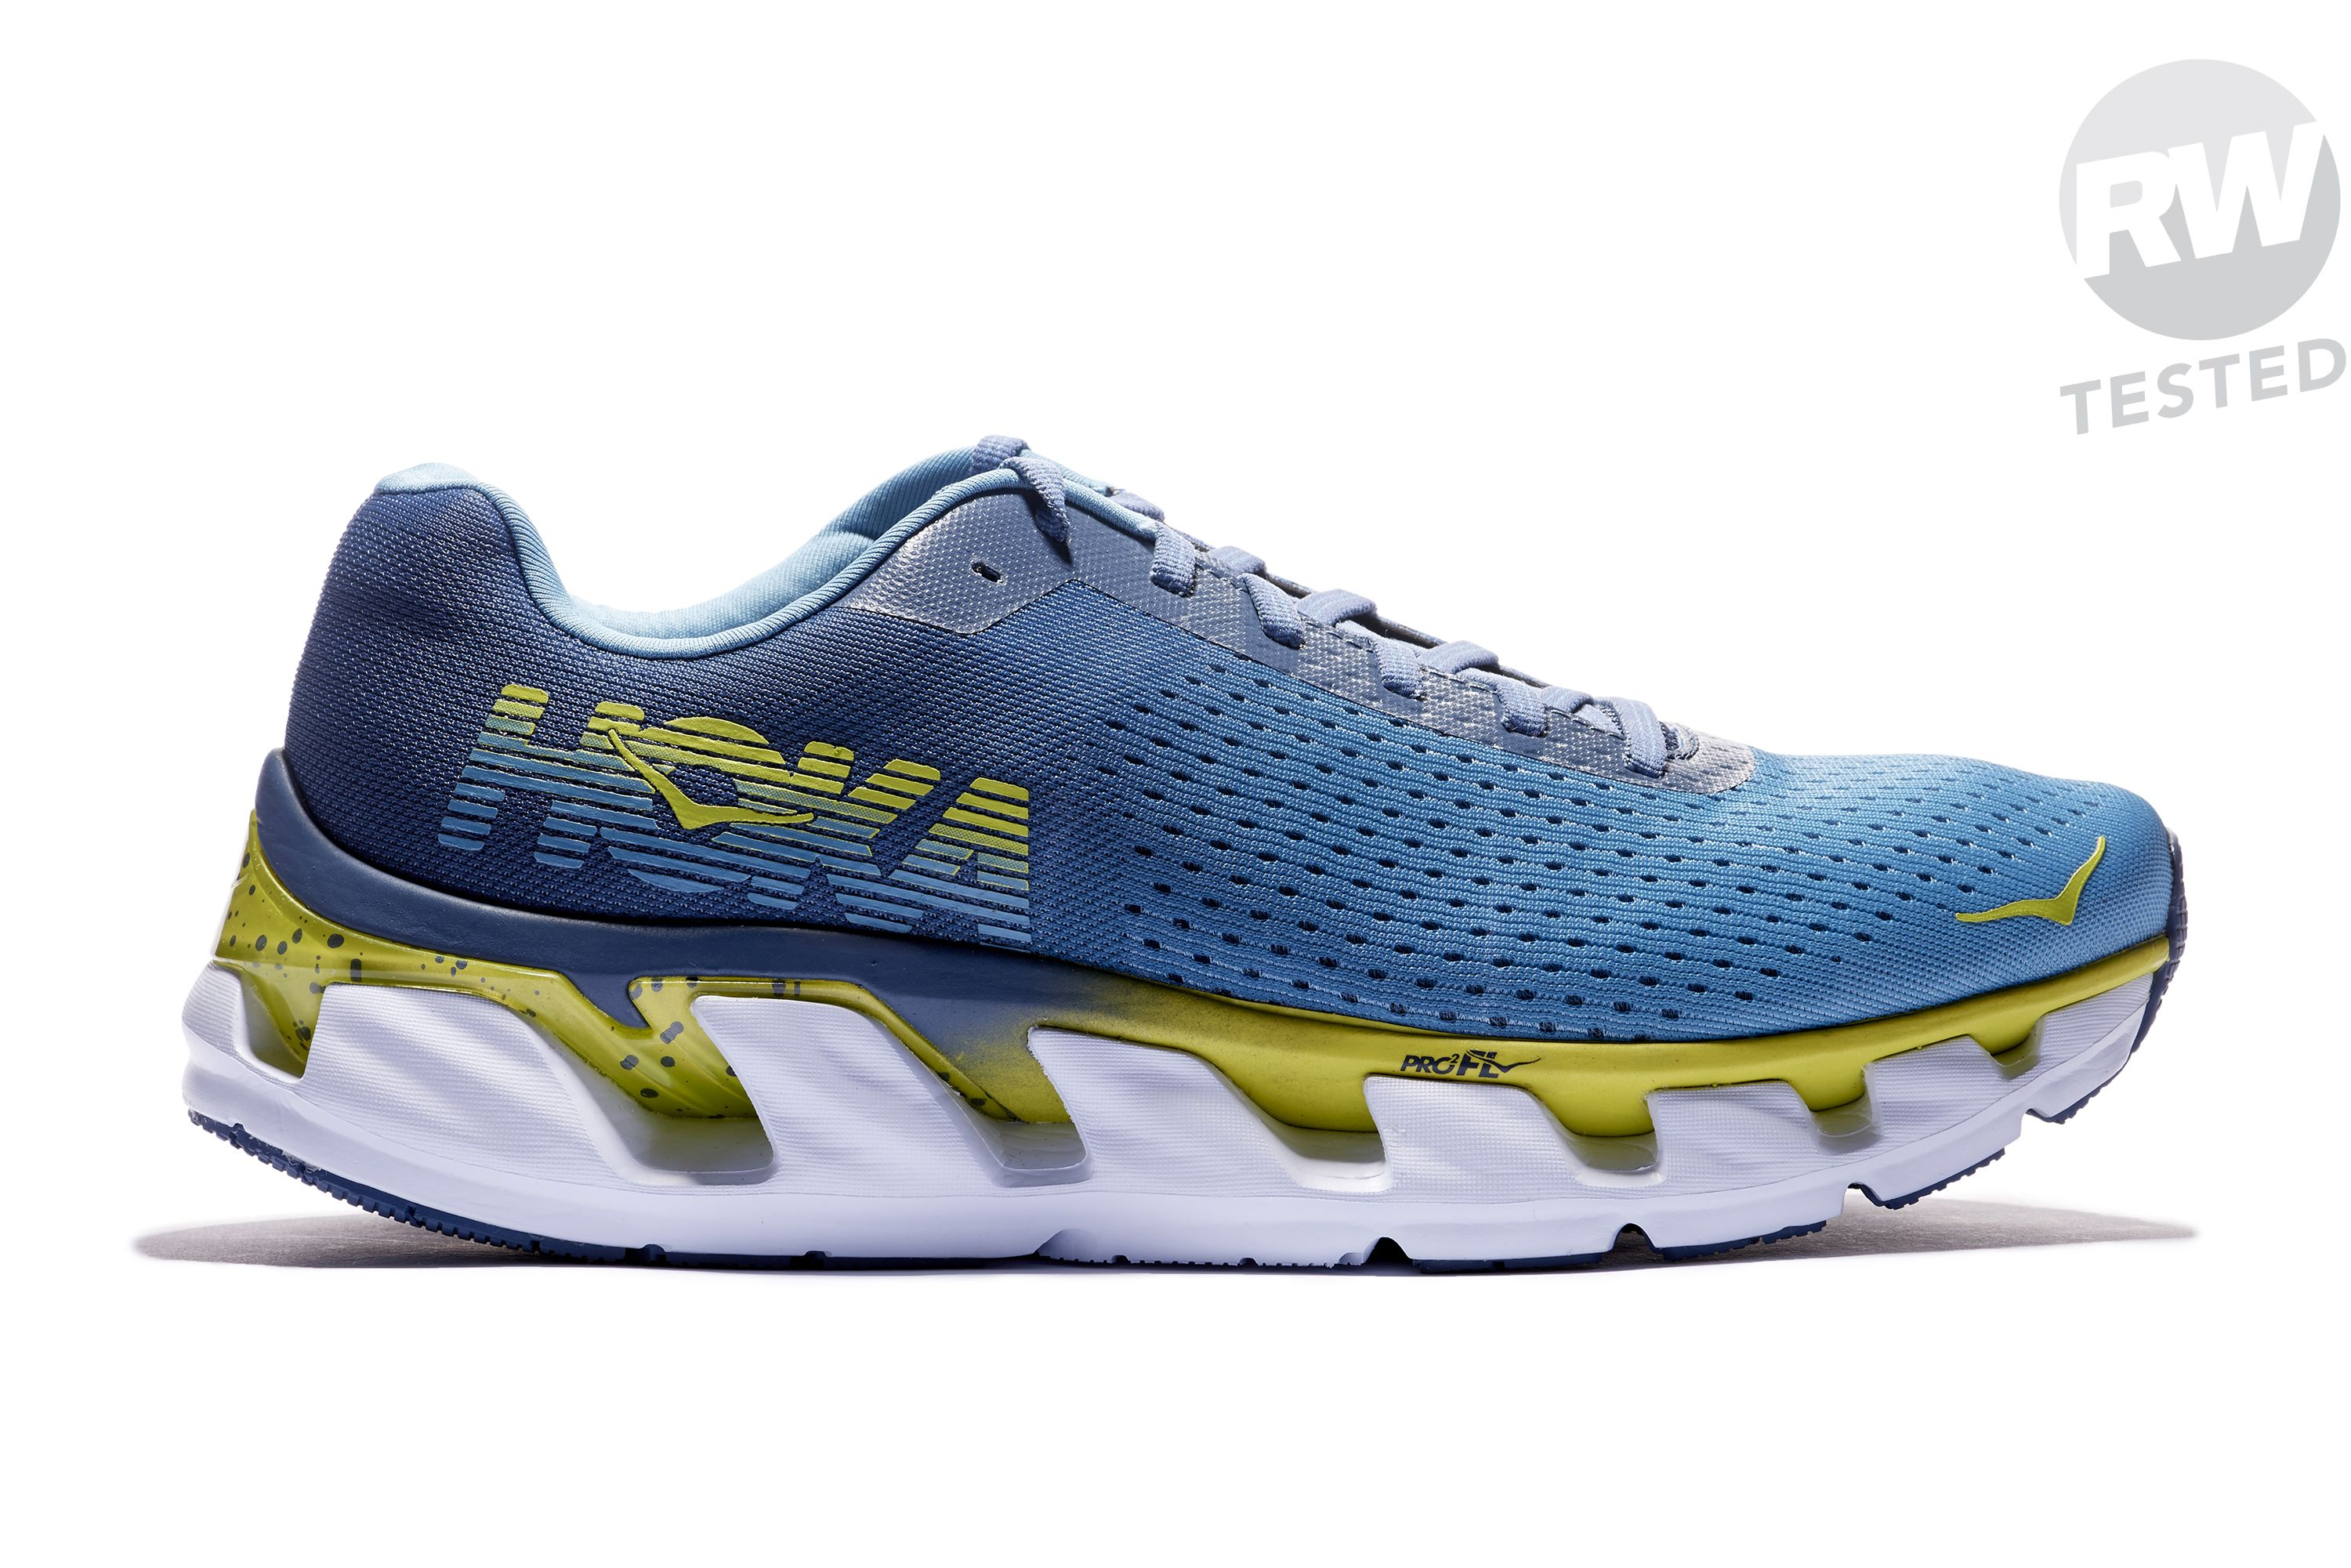 Hoka One One Elevon - Best Running Shoes of 2018 18080eae0ae